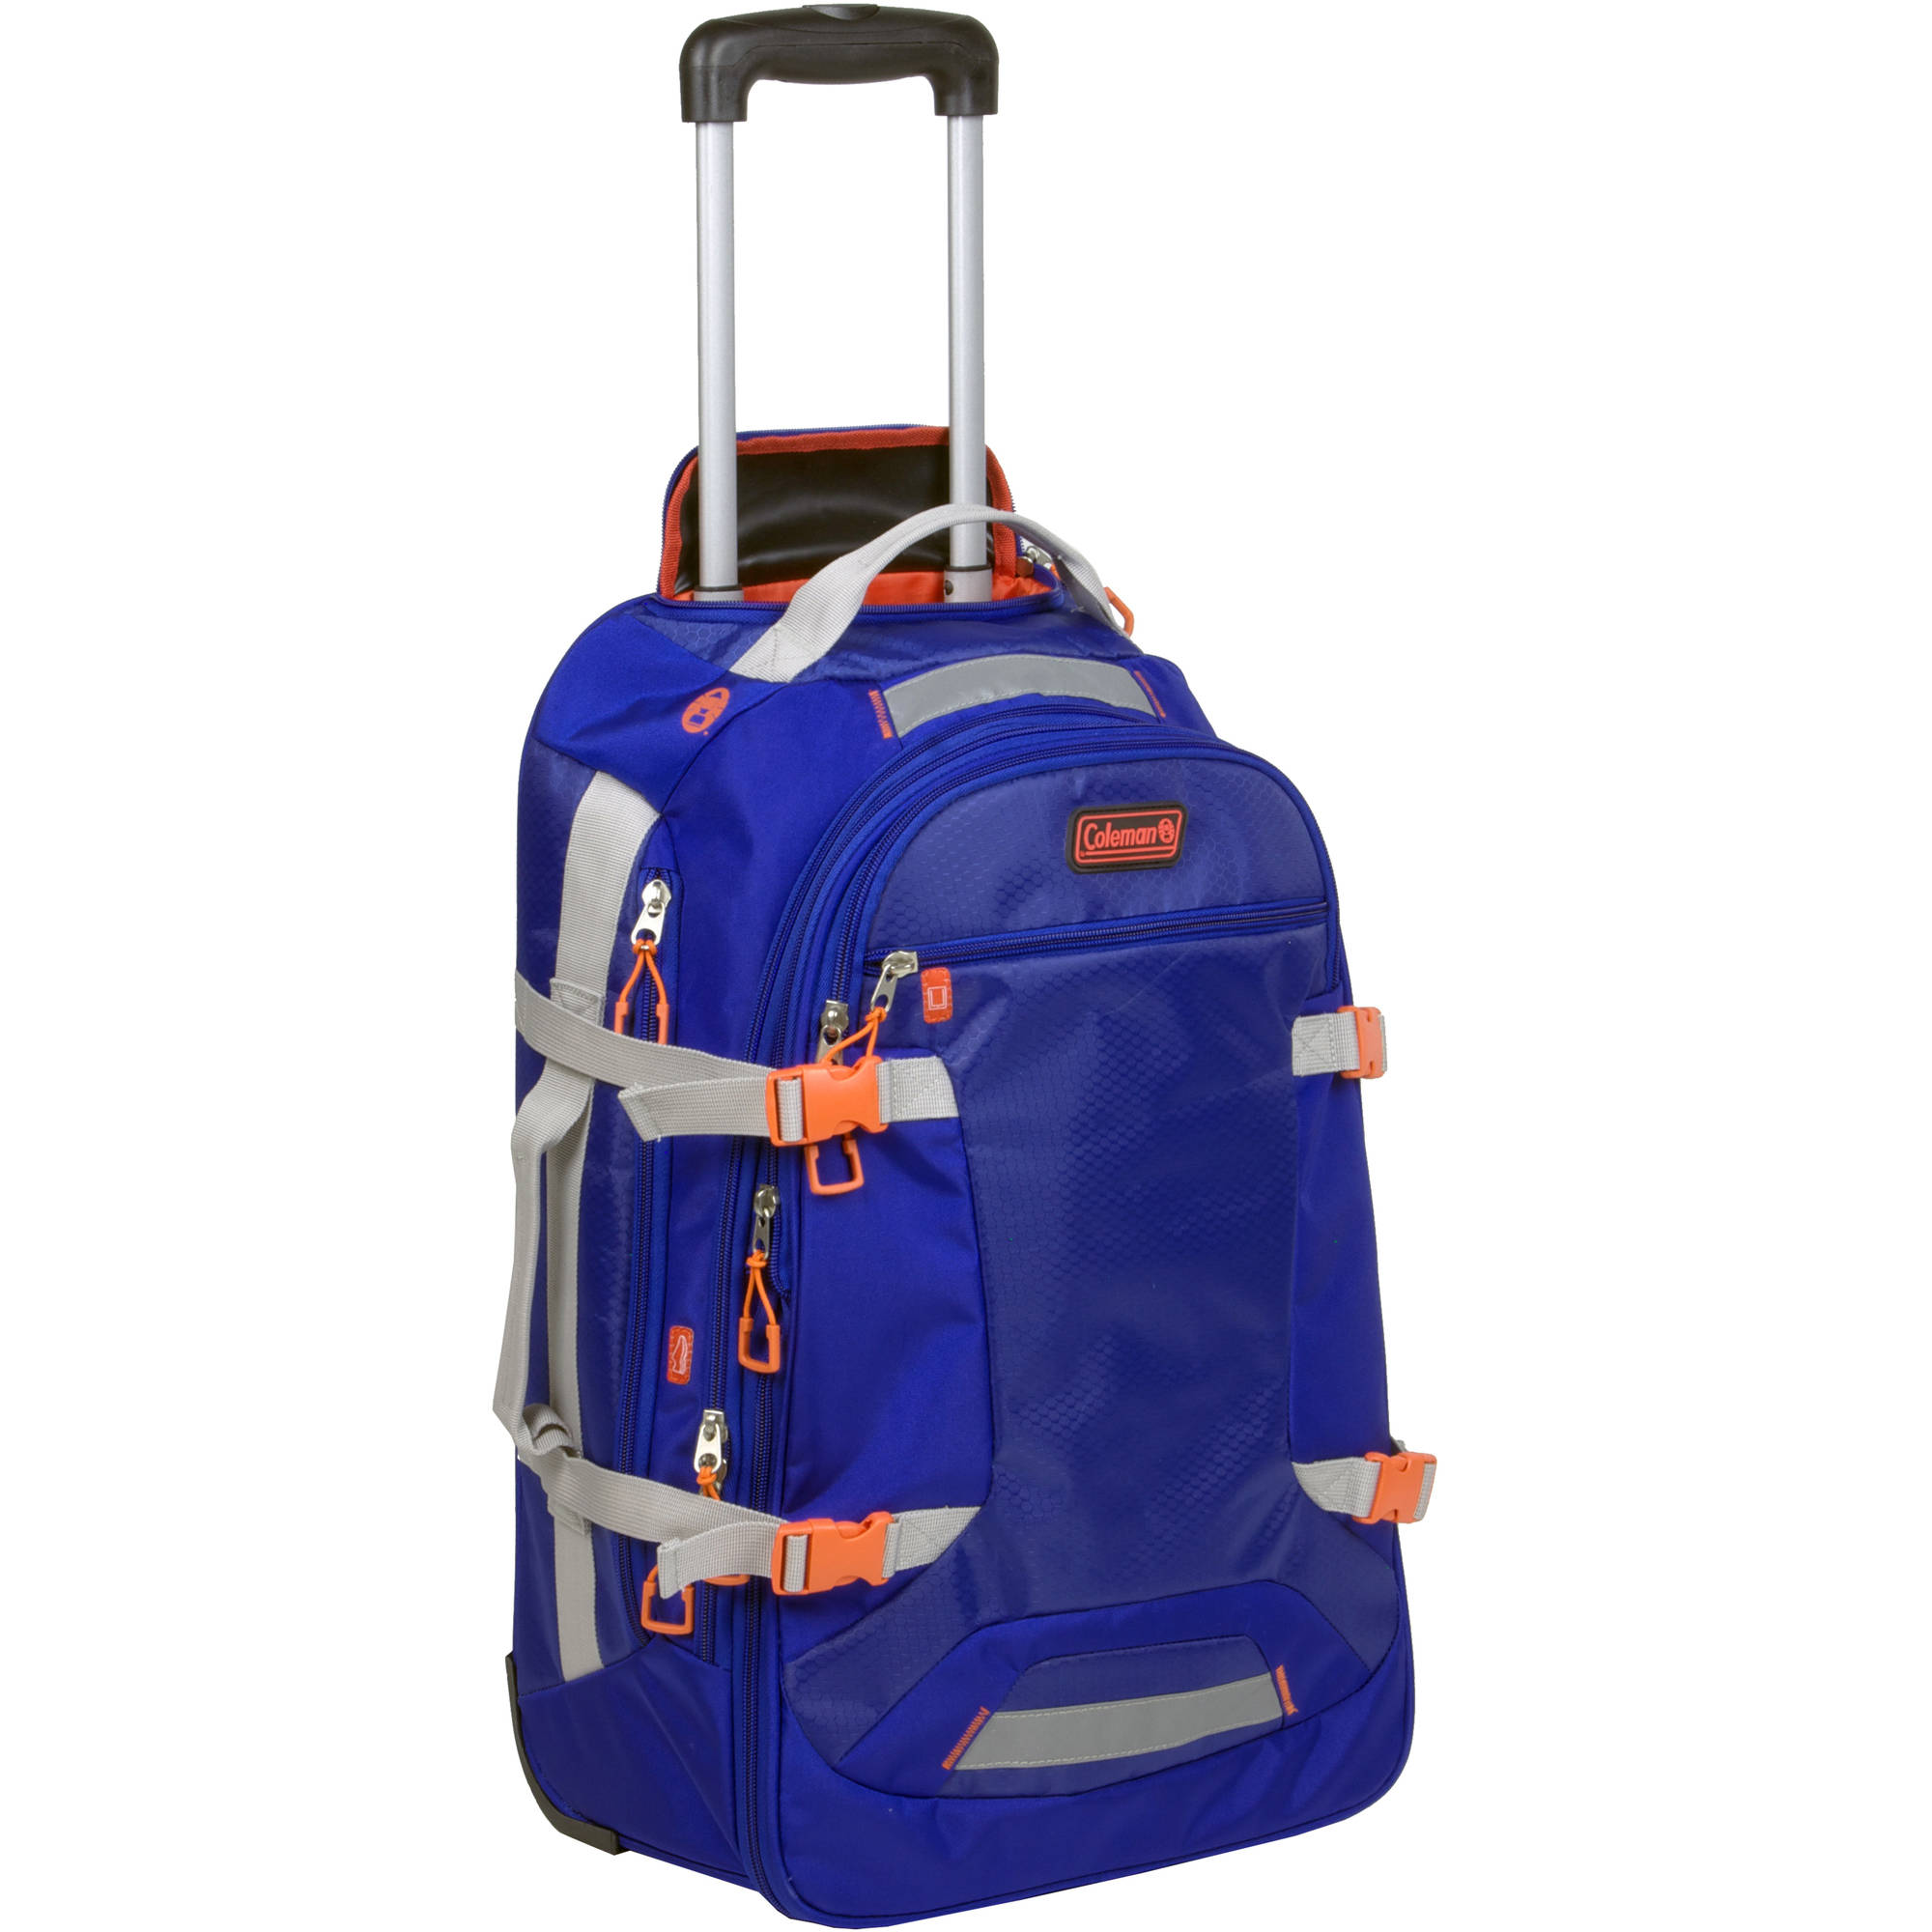 Coleman Everest Casual Upright Rolling Suitcase, Blue with Orange